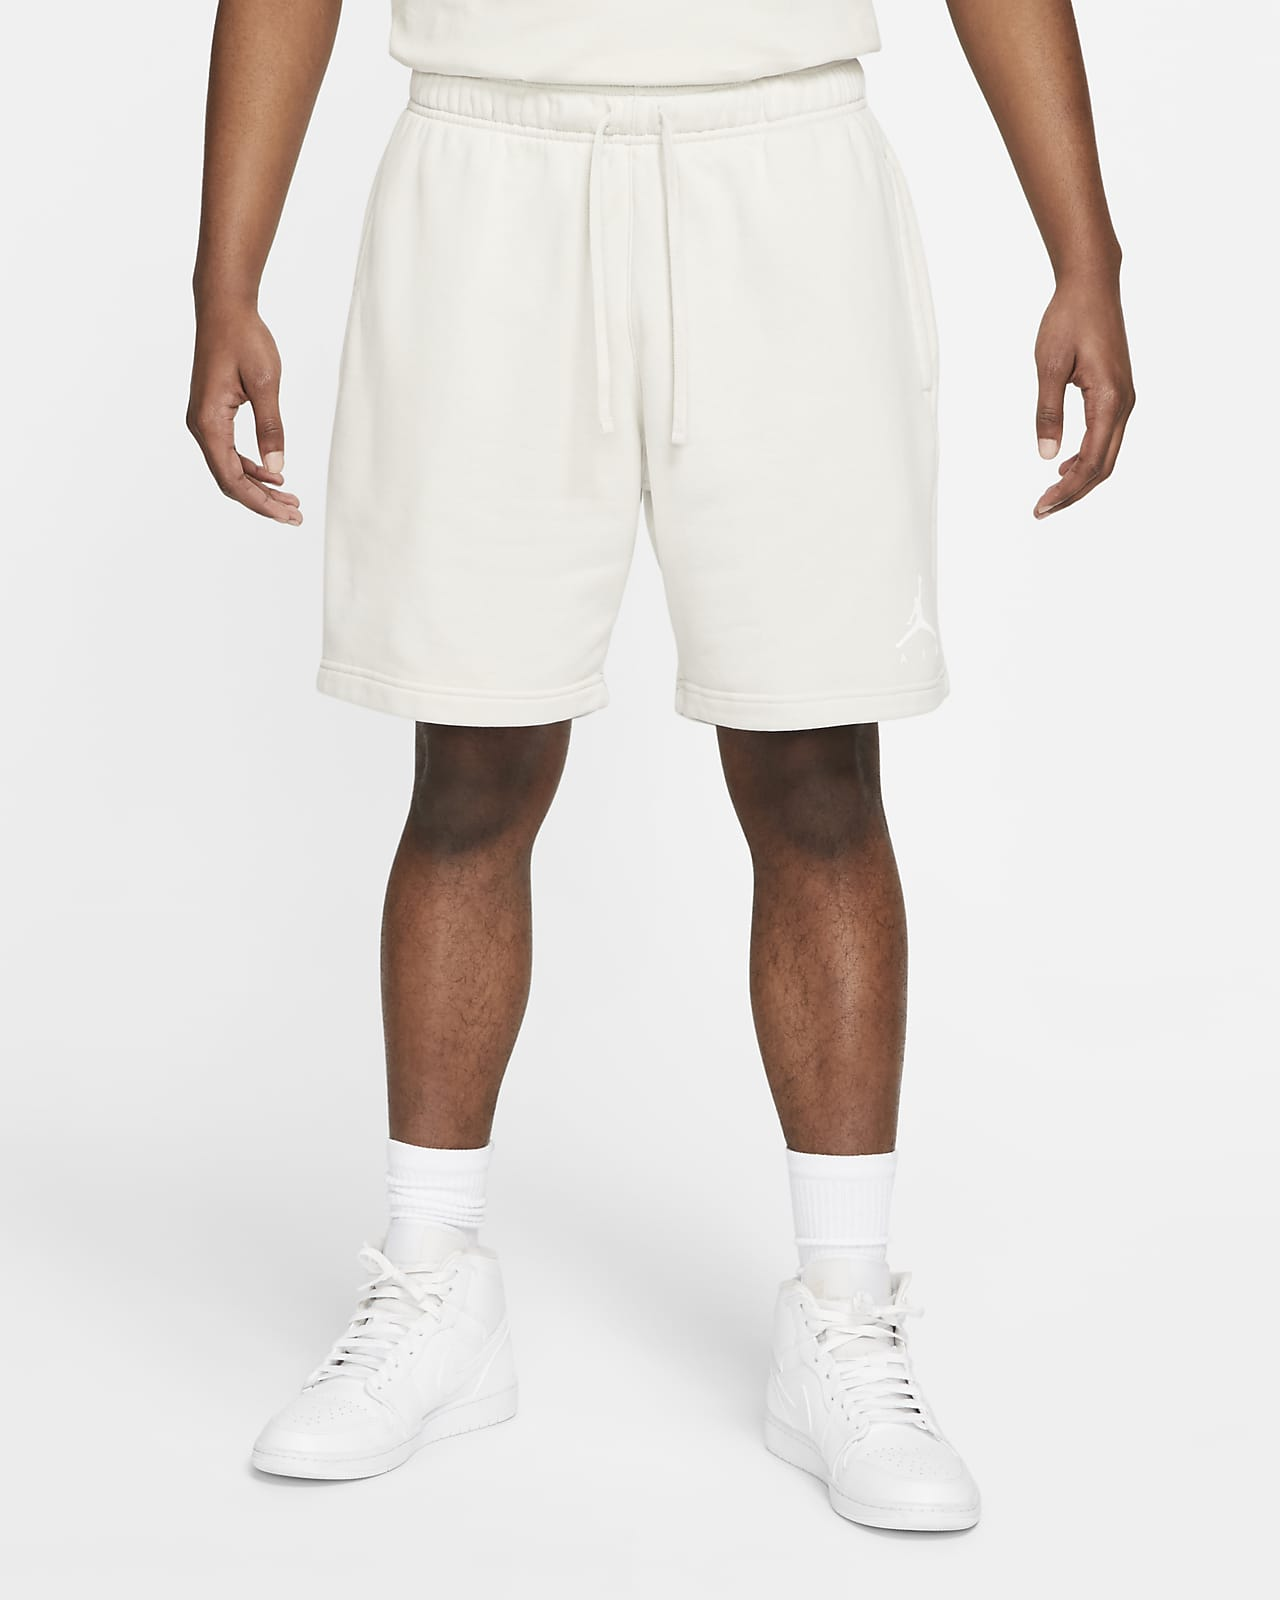 Jordan Jumpman Men's Washed Fleece Shorts